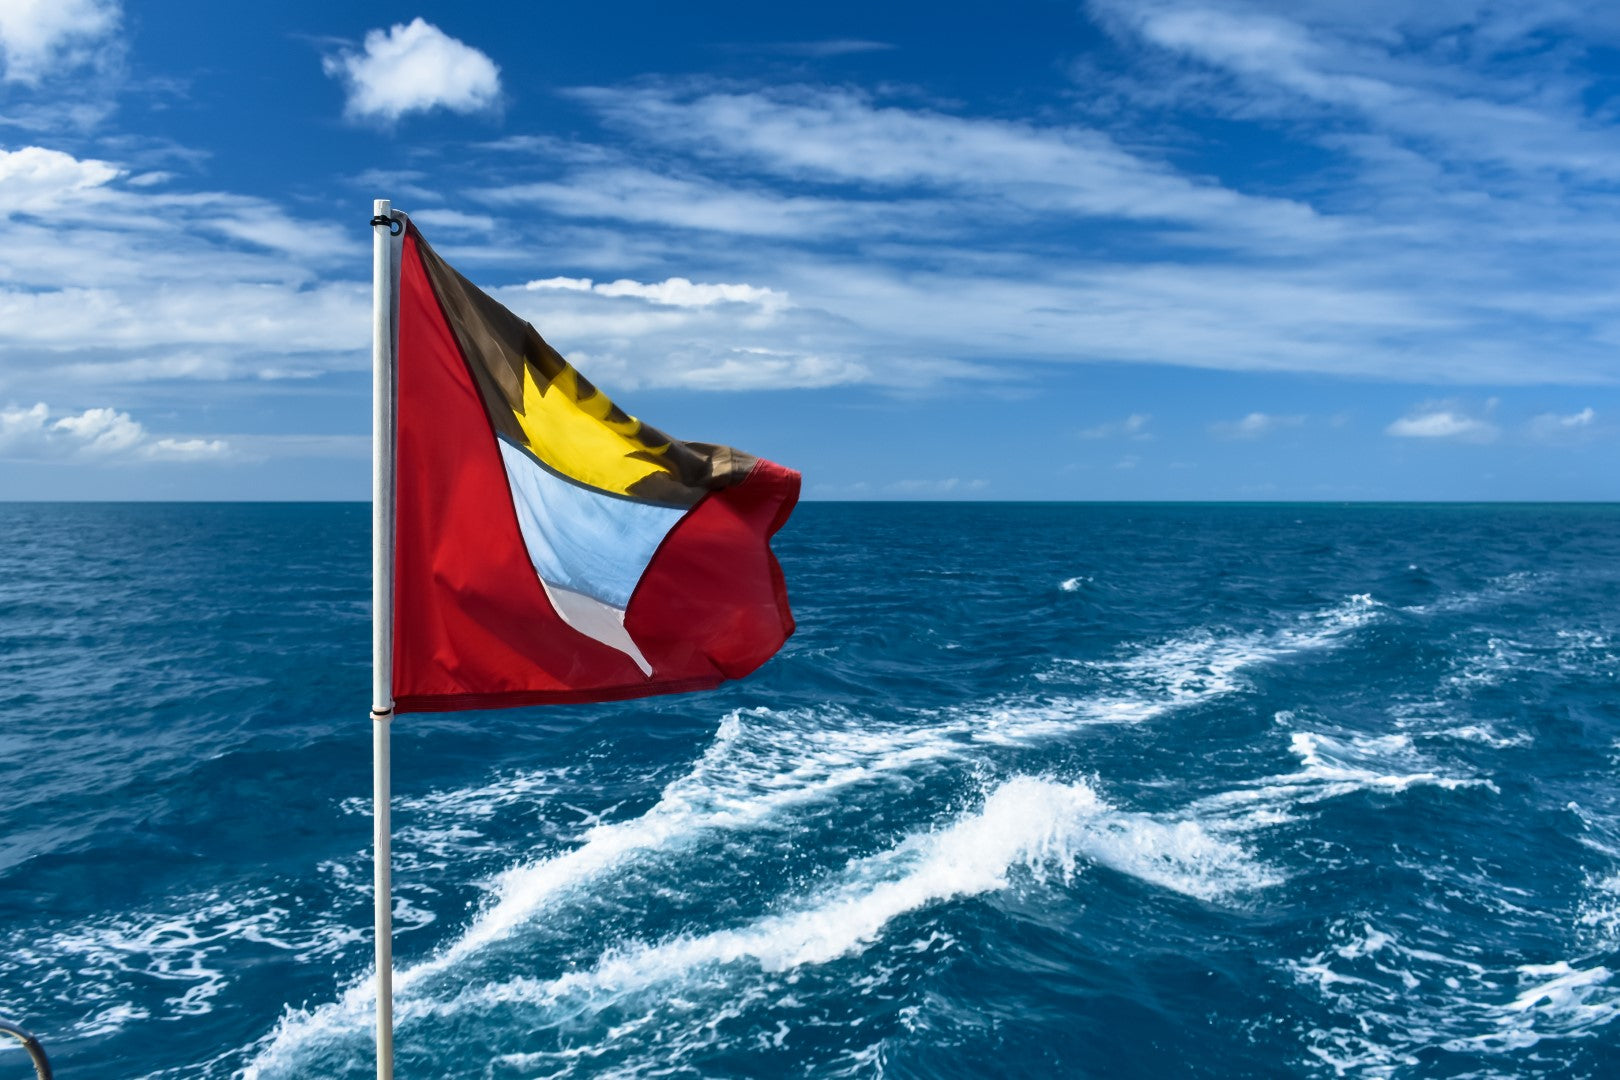 Australian Cricket Tours - Antiguan Flag Flowing Freely From The Stern Of A Wadadli Catamaran Sailing Around Antigua